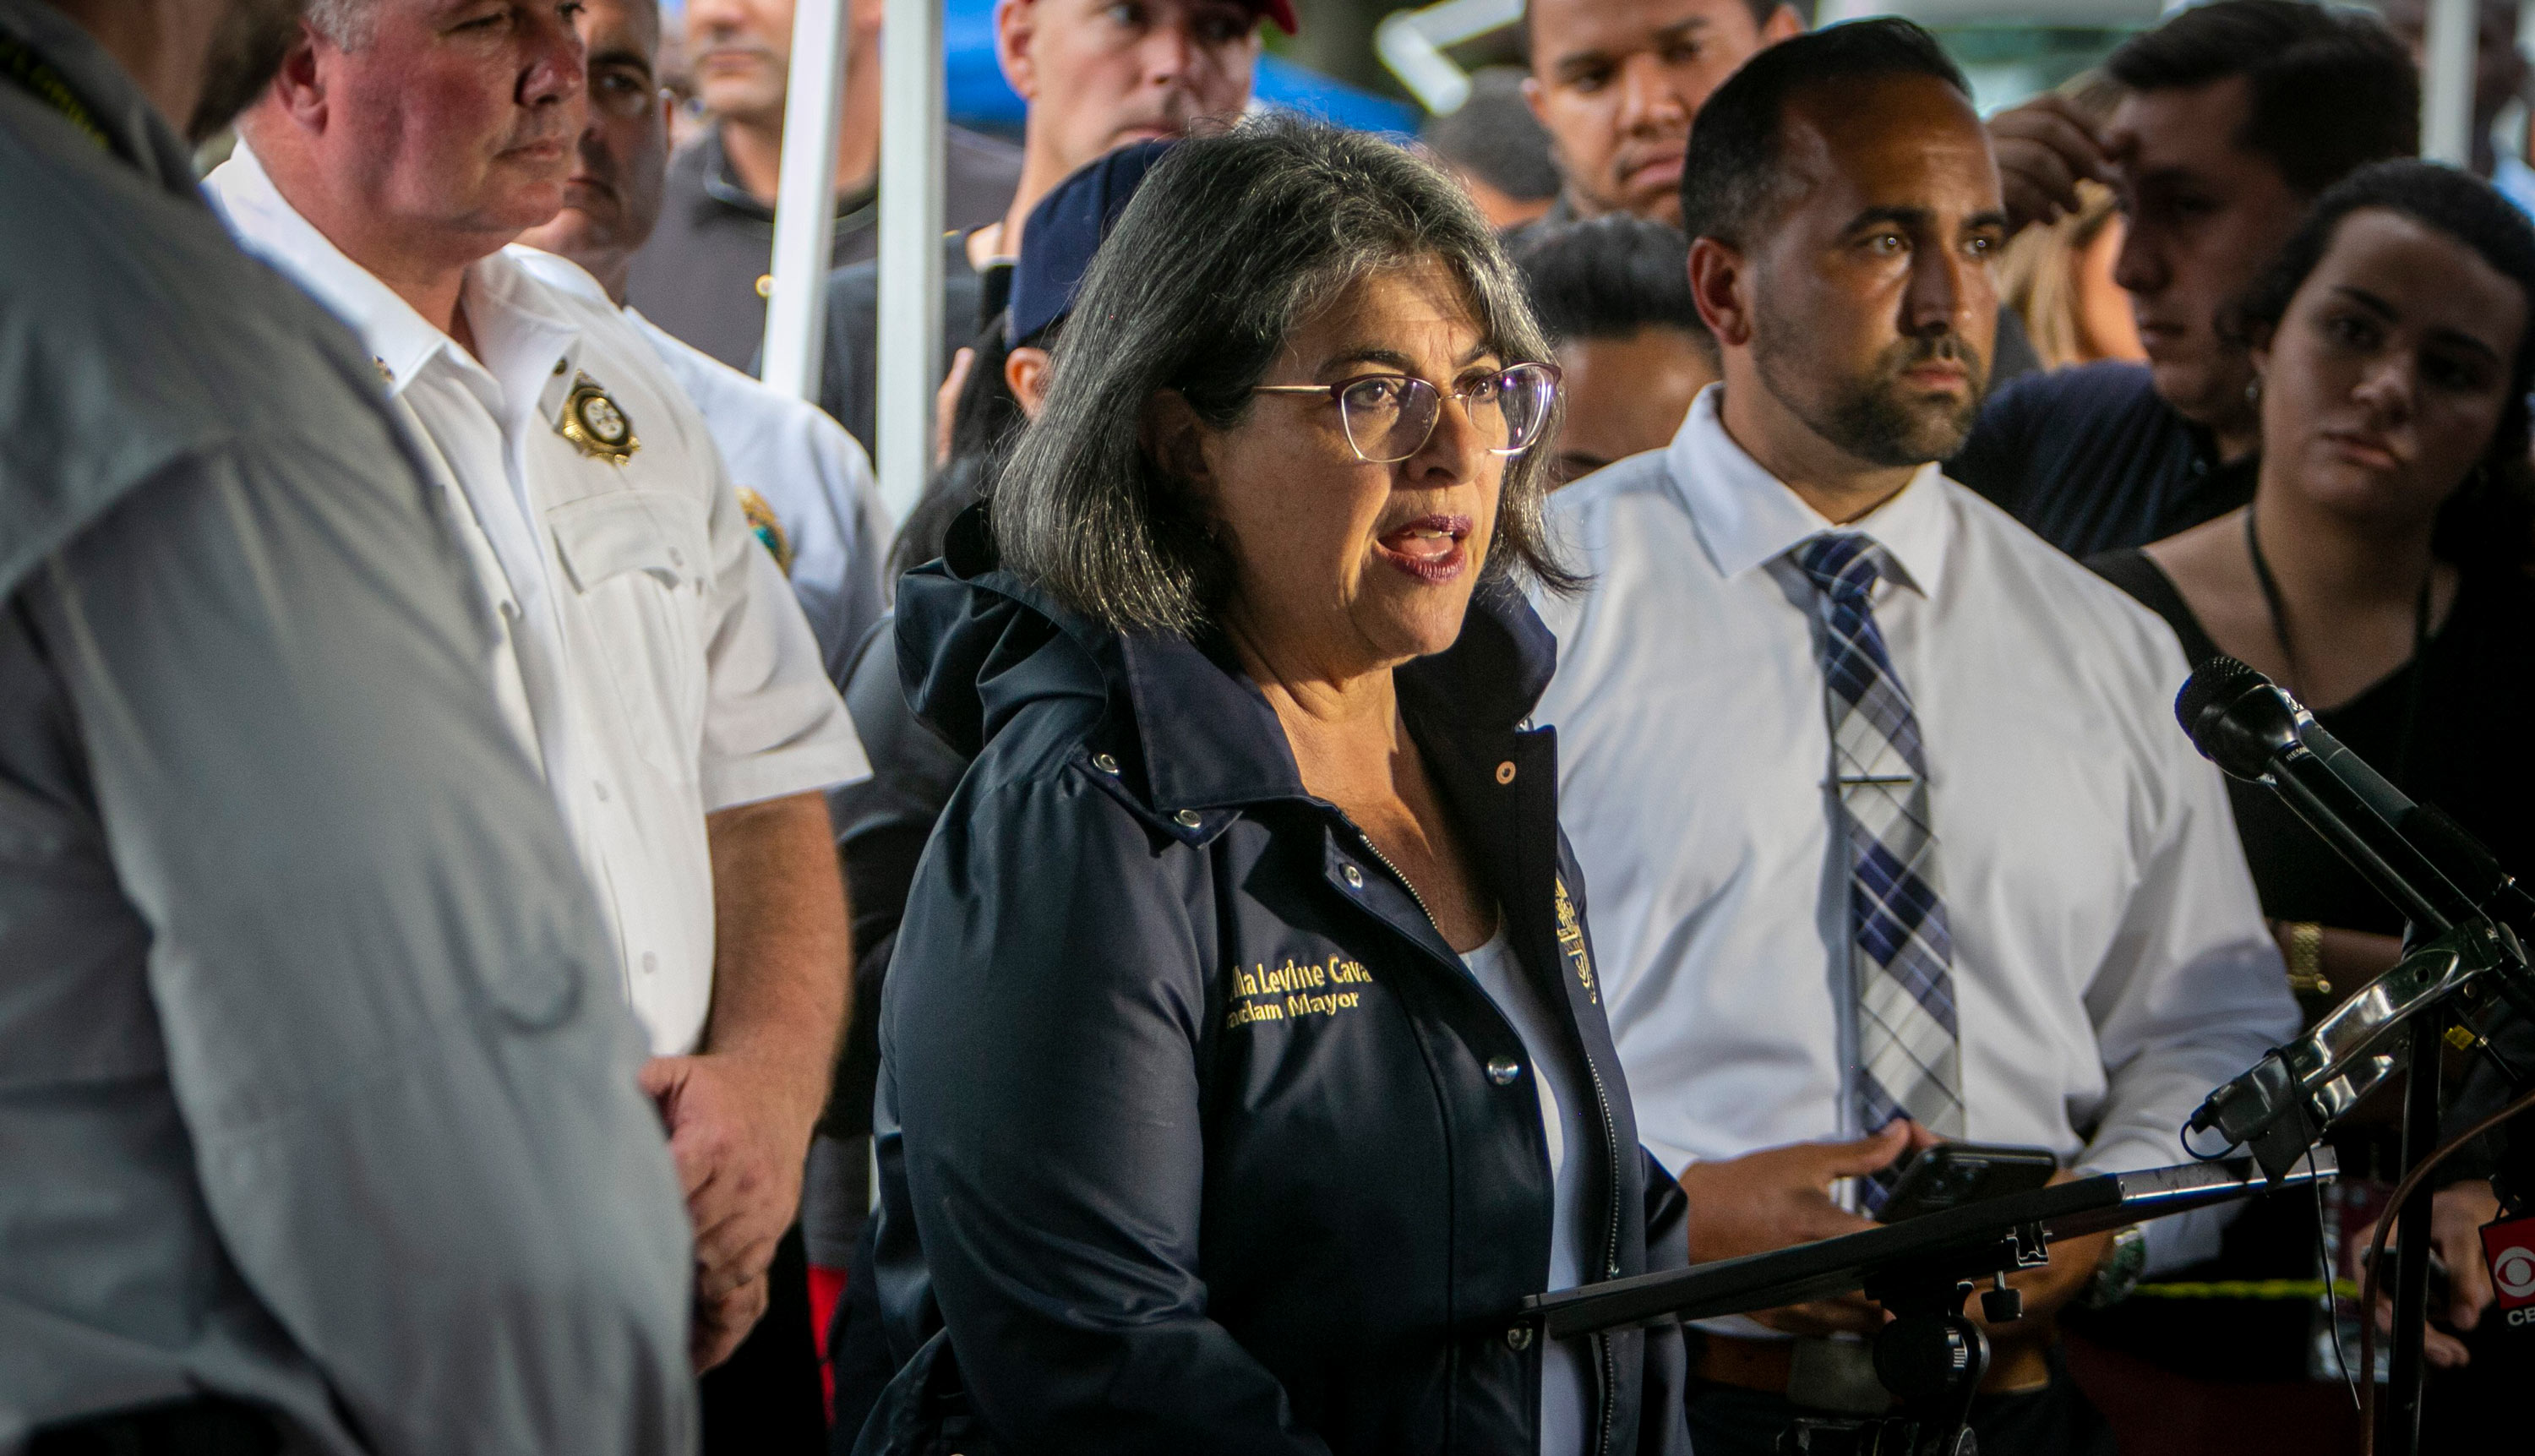 Miami-Dade County Mayor Daniella Levine Cava speaks to the media during a press conference in Surfside, Florida, on June 28.